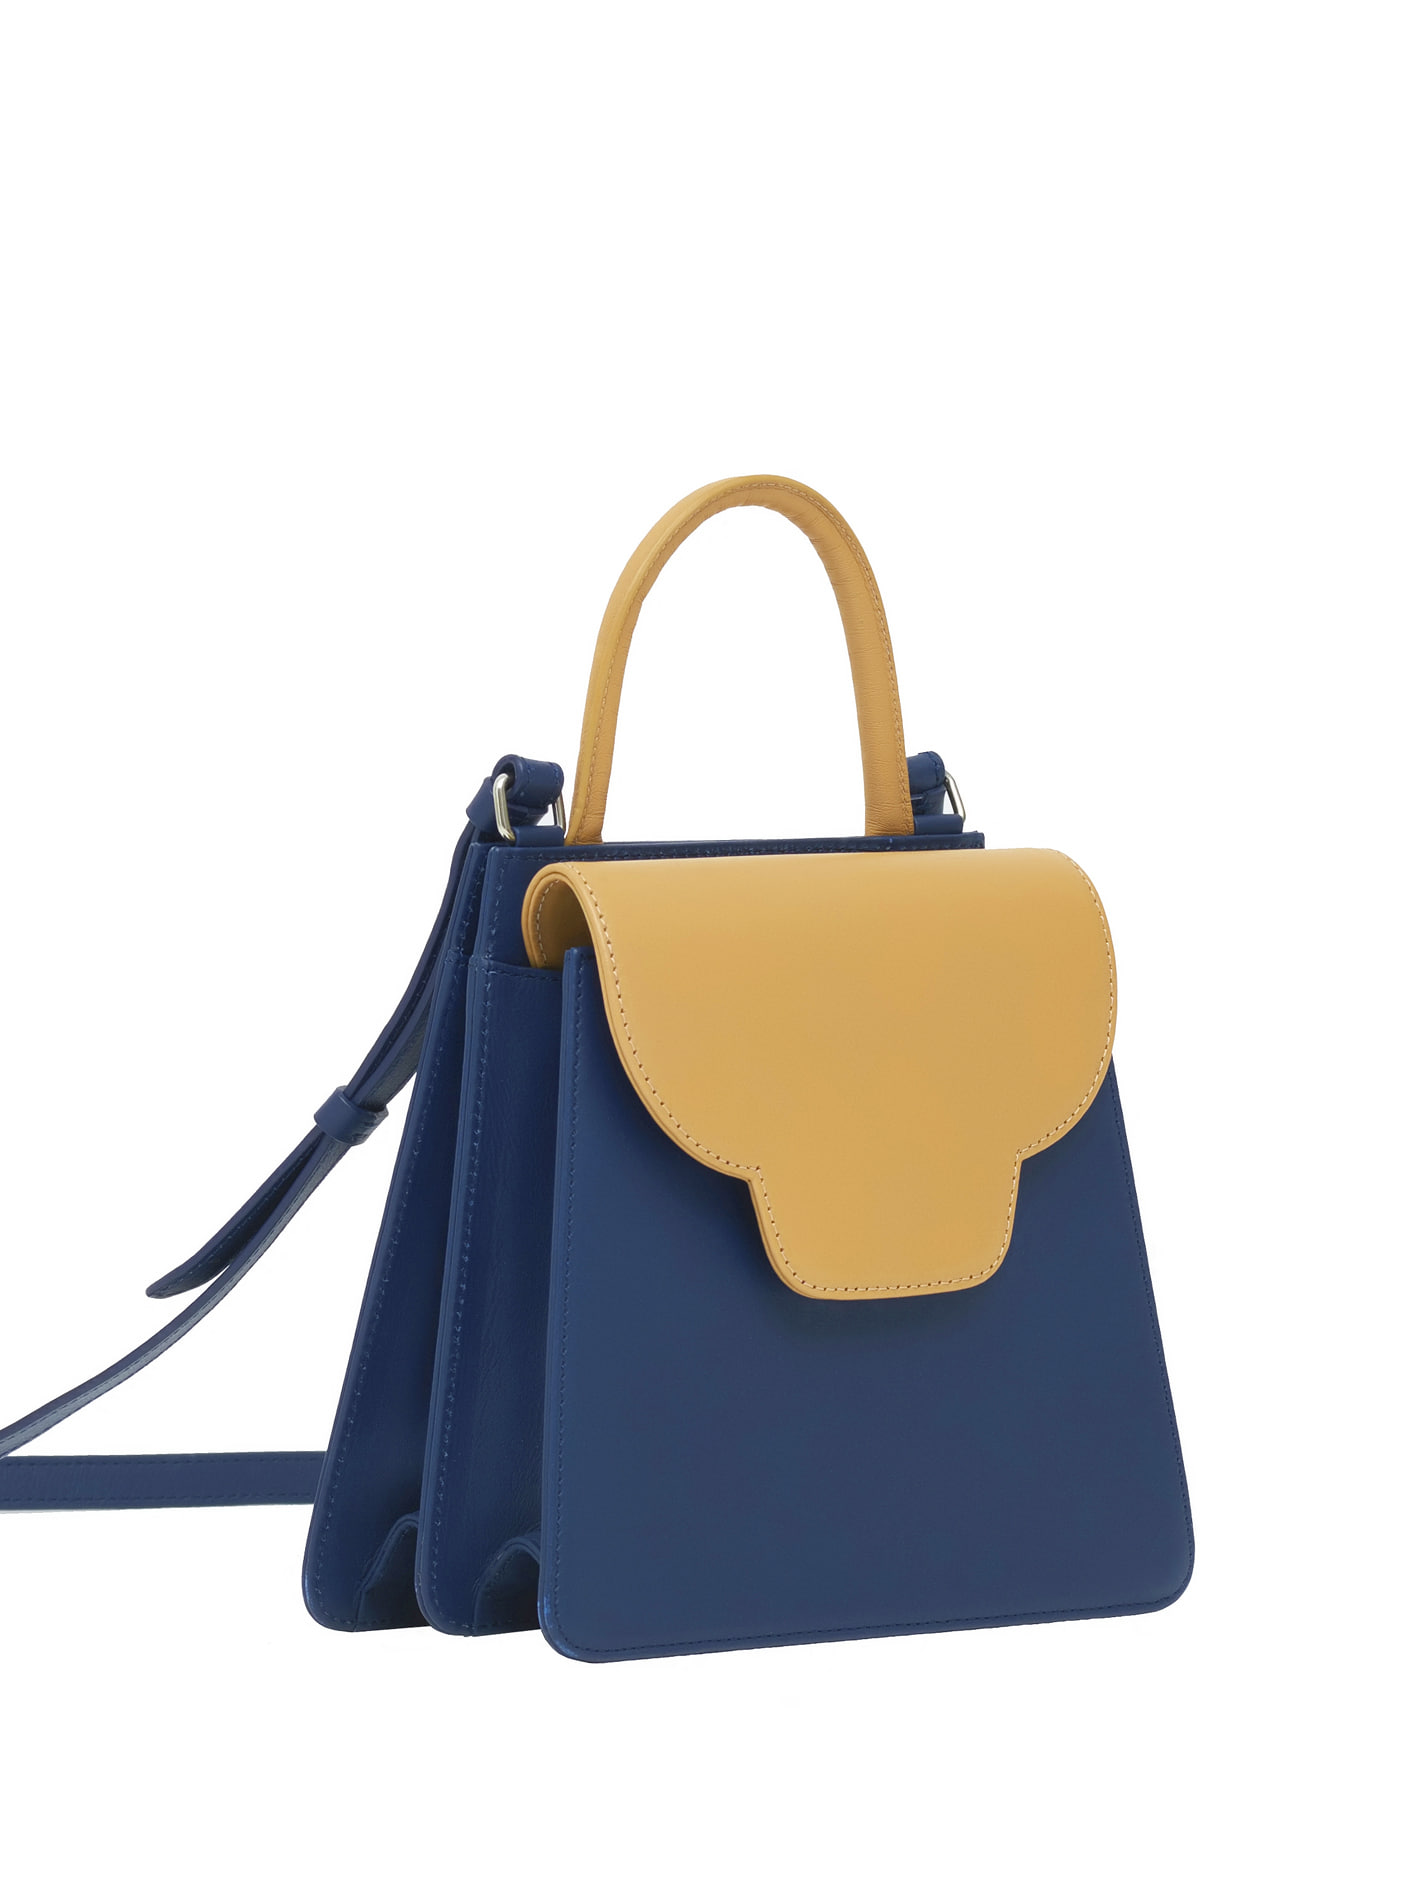 LE BEAU BAG - NAVY